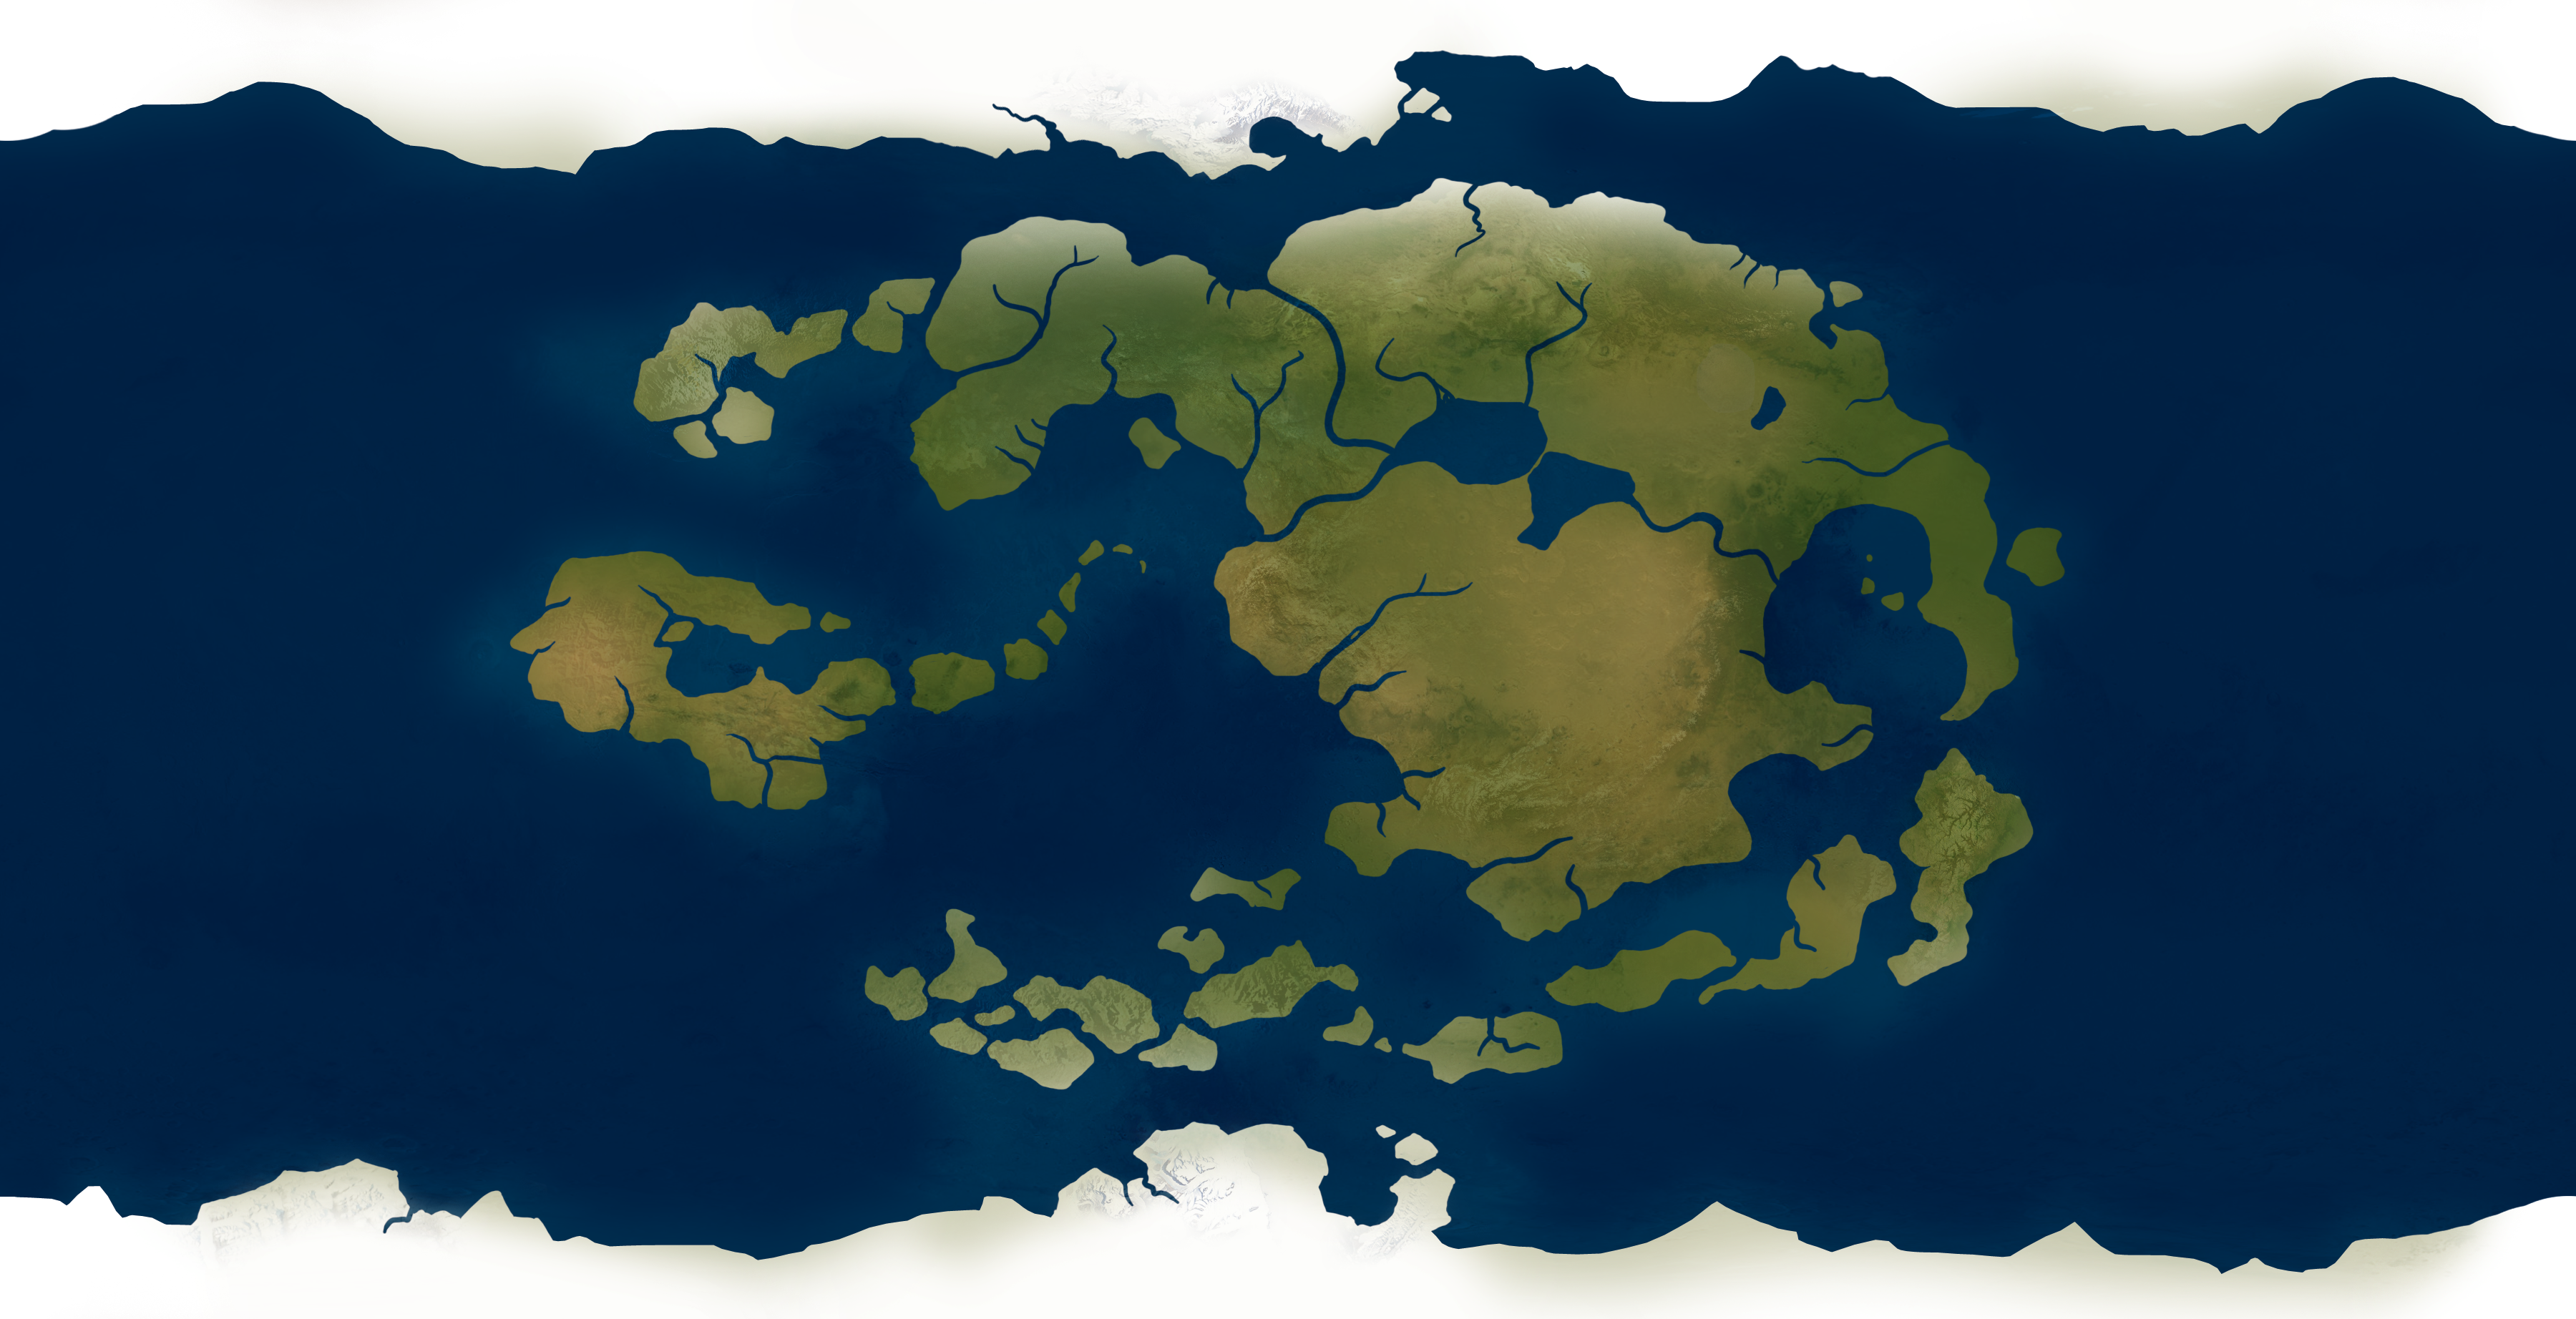 I made a mathematically accurate map of the world of Avatar ...